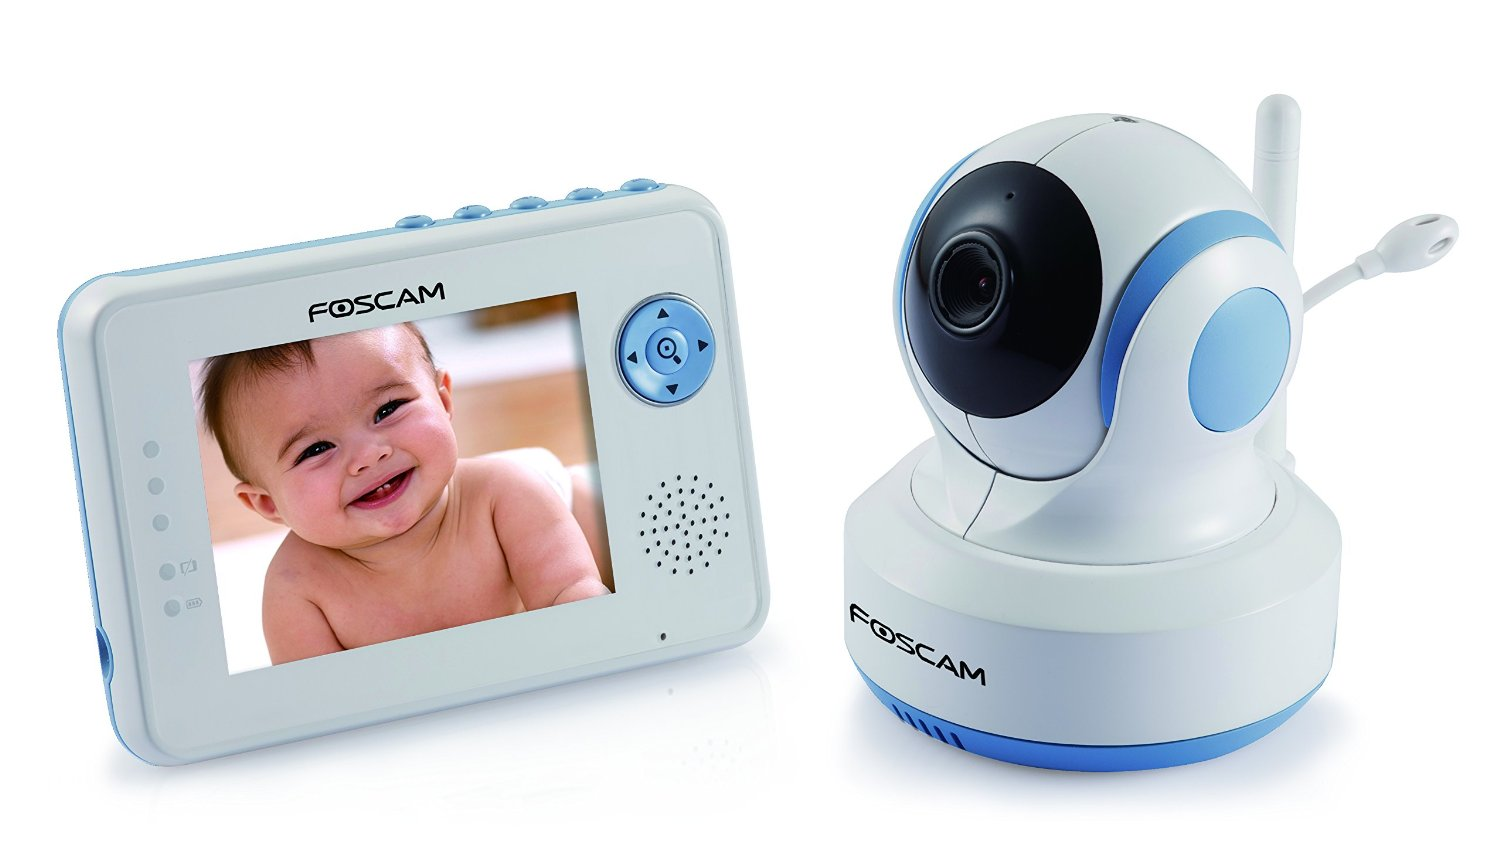 foscam fbm3502 digital video baby monitor review. Black Bedroom Furniture Sets. Home Design Ideas